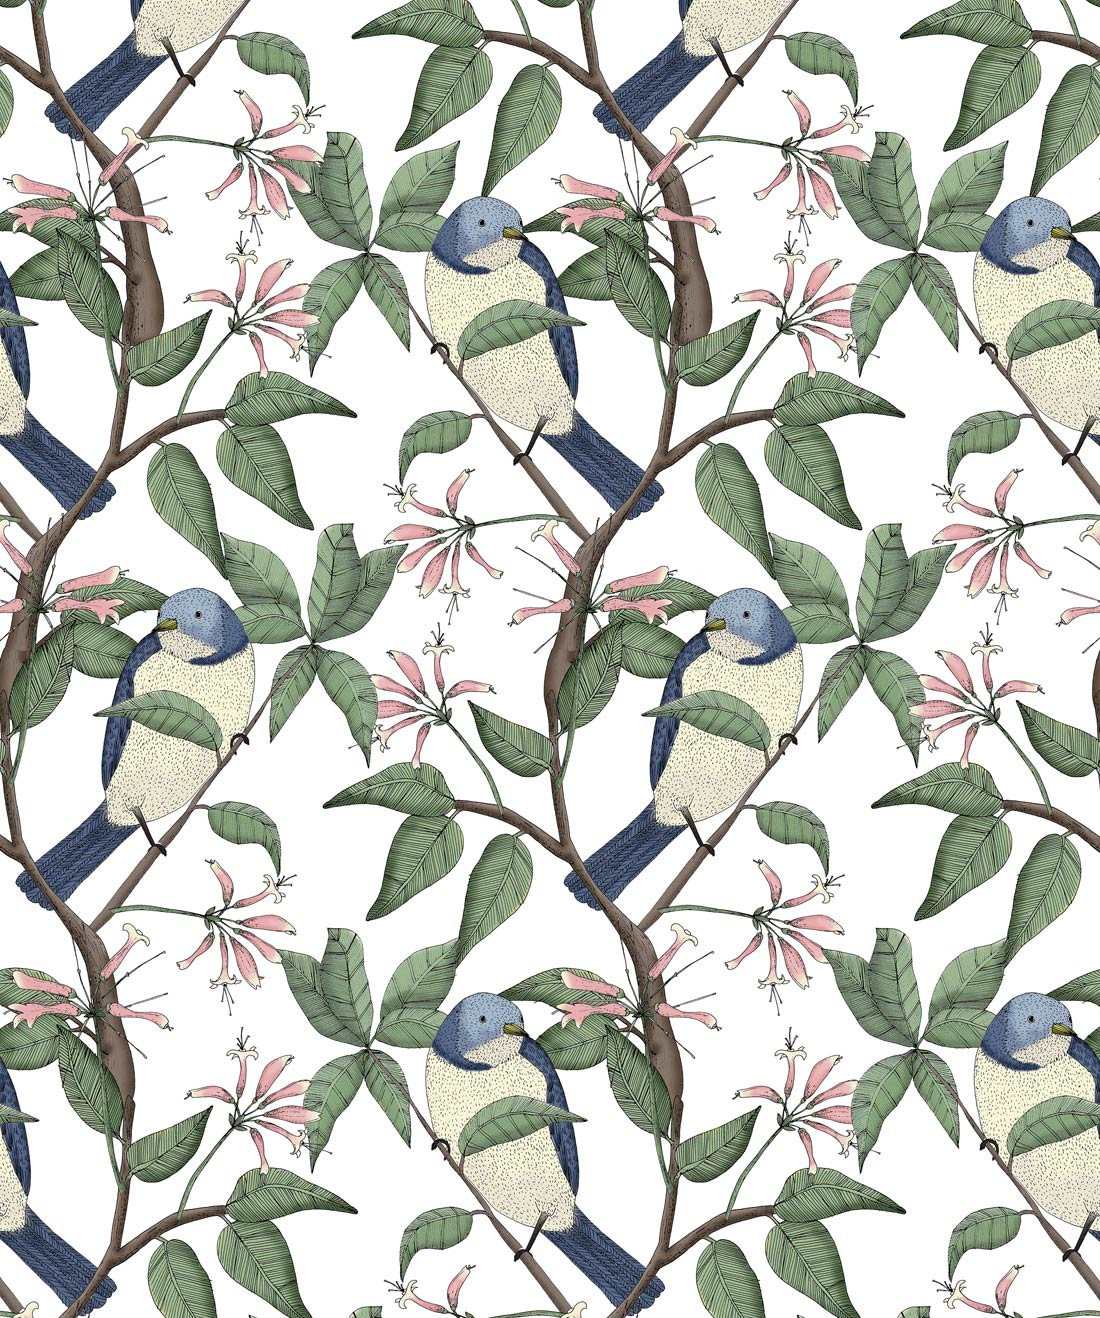 Bird Spotting Wallpaper